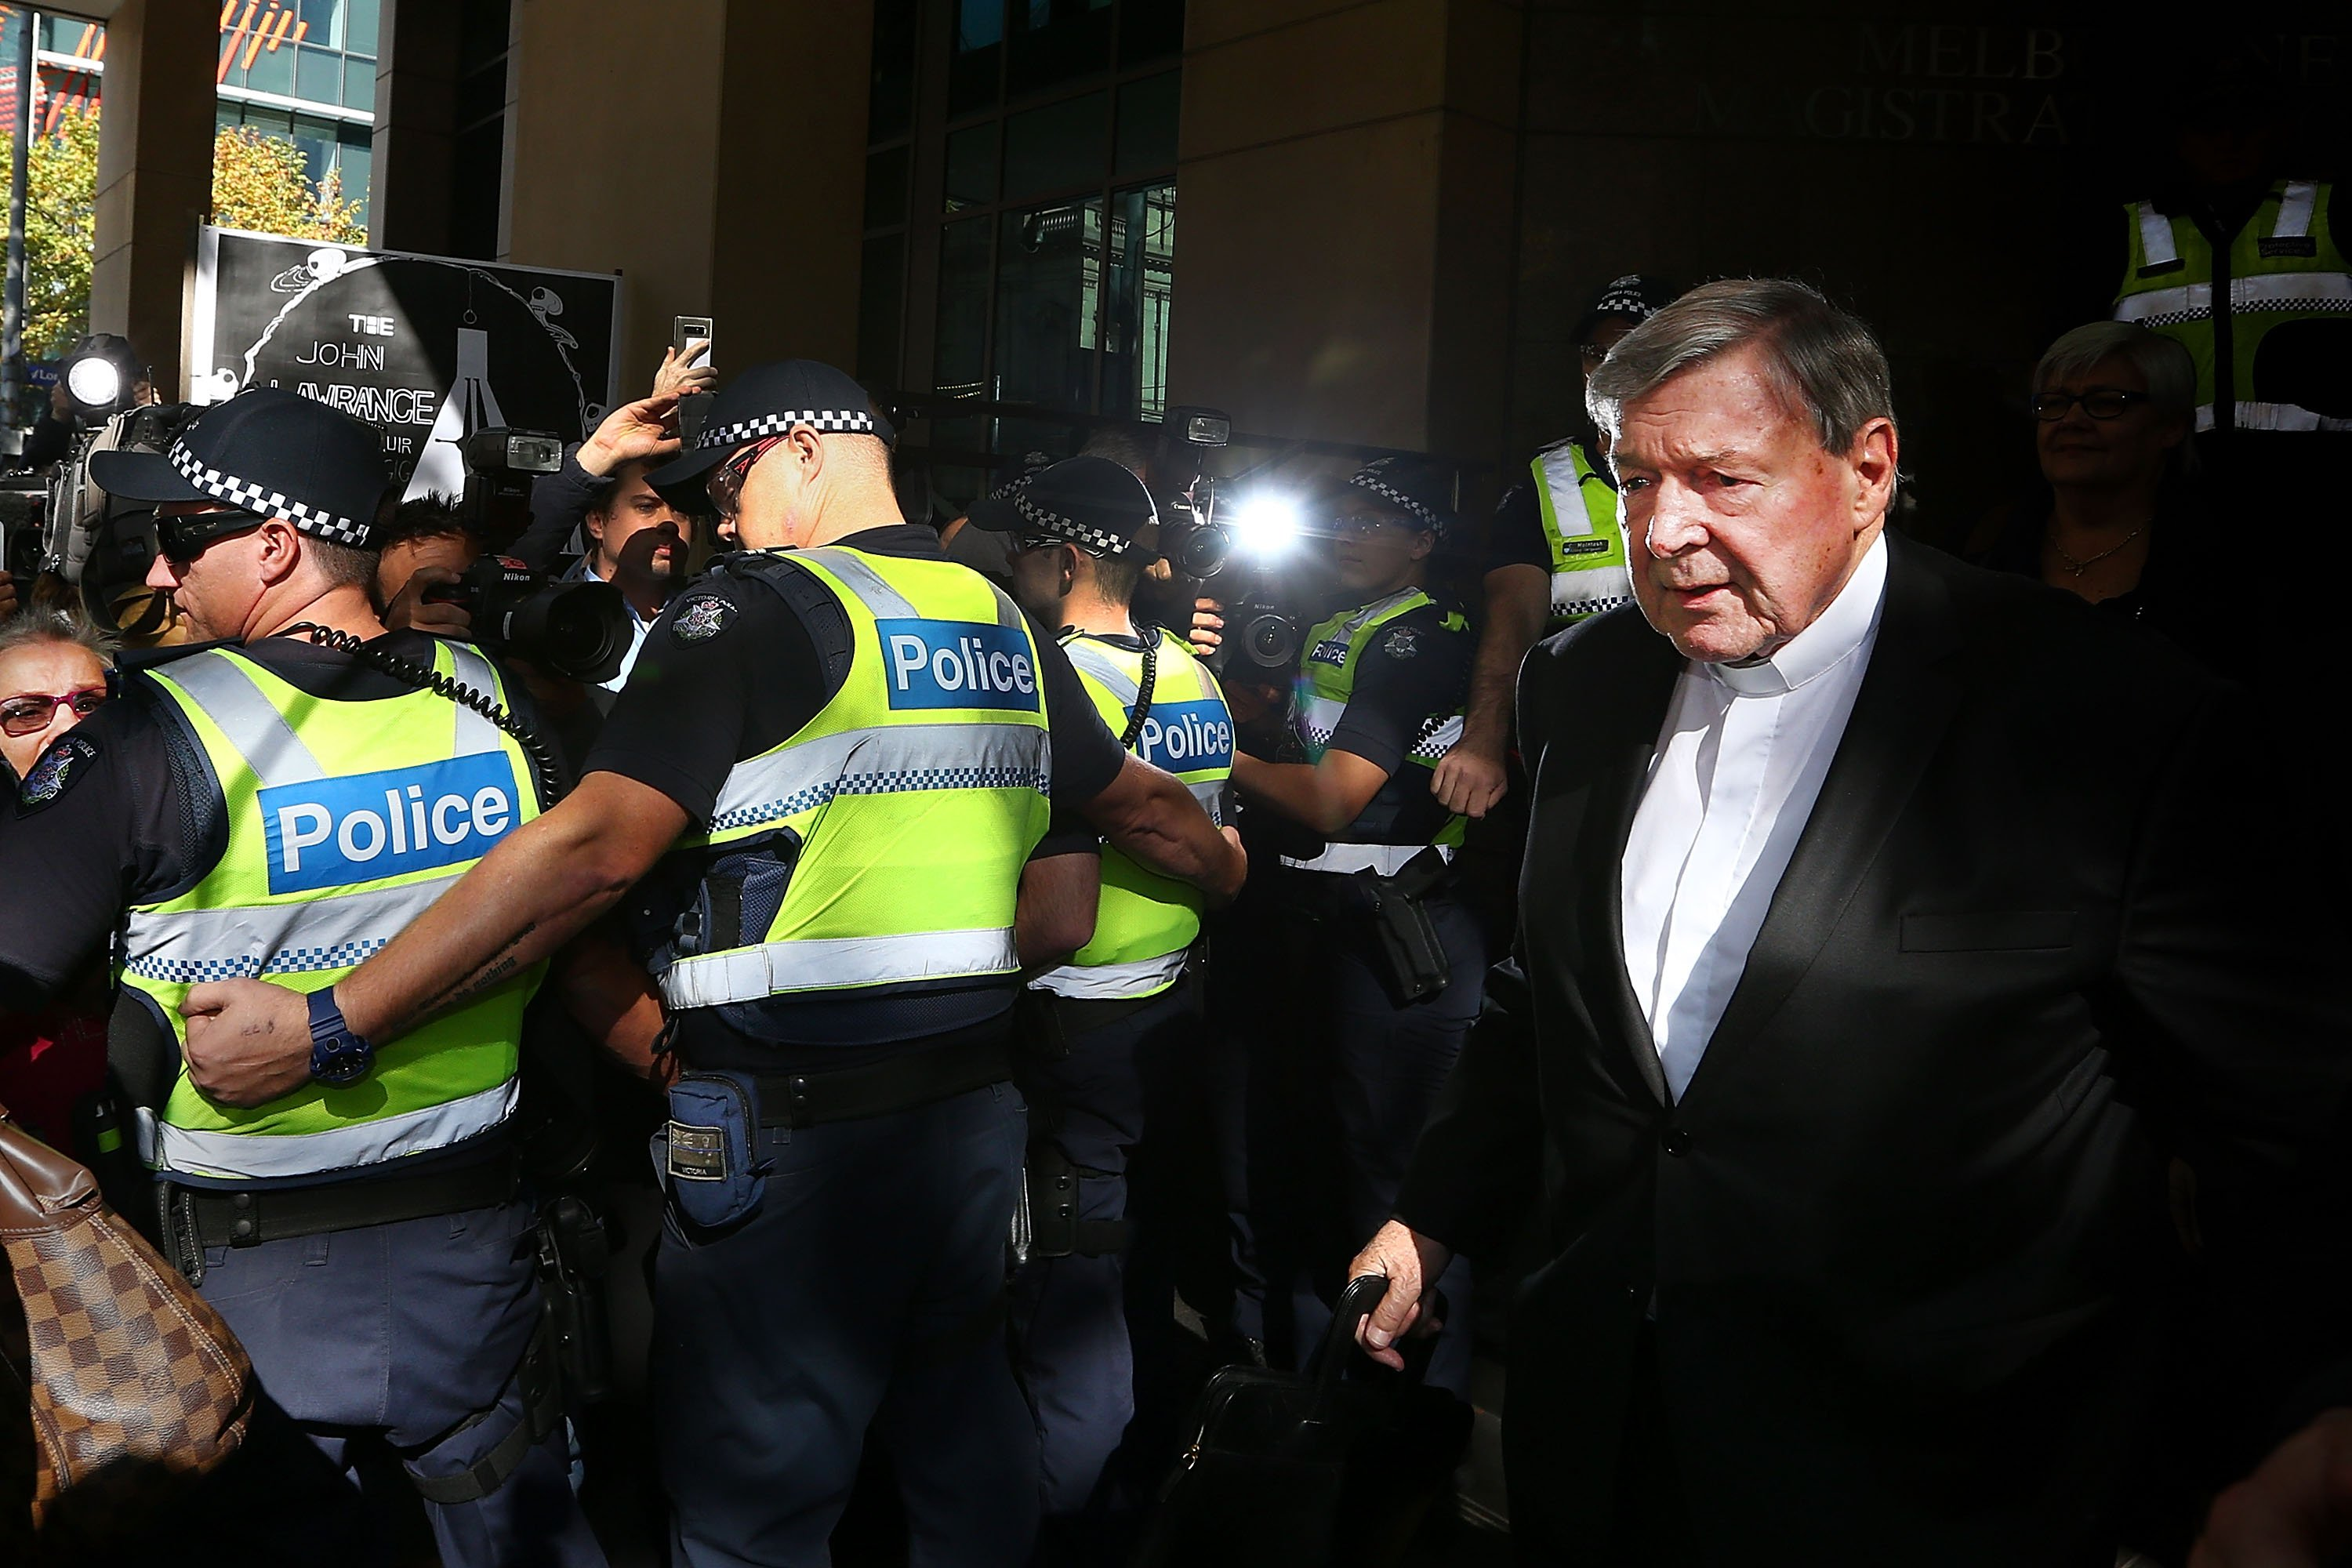 Cardinal George Pell leaves at Melbourne Magistrates' Court in Melbourne, Australia. Cardinal Pell was charged on summons by Victoria Police over allegations of sexual assault. (Photo by Michael Dodge/Getty Images)